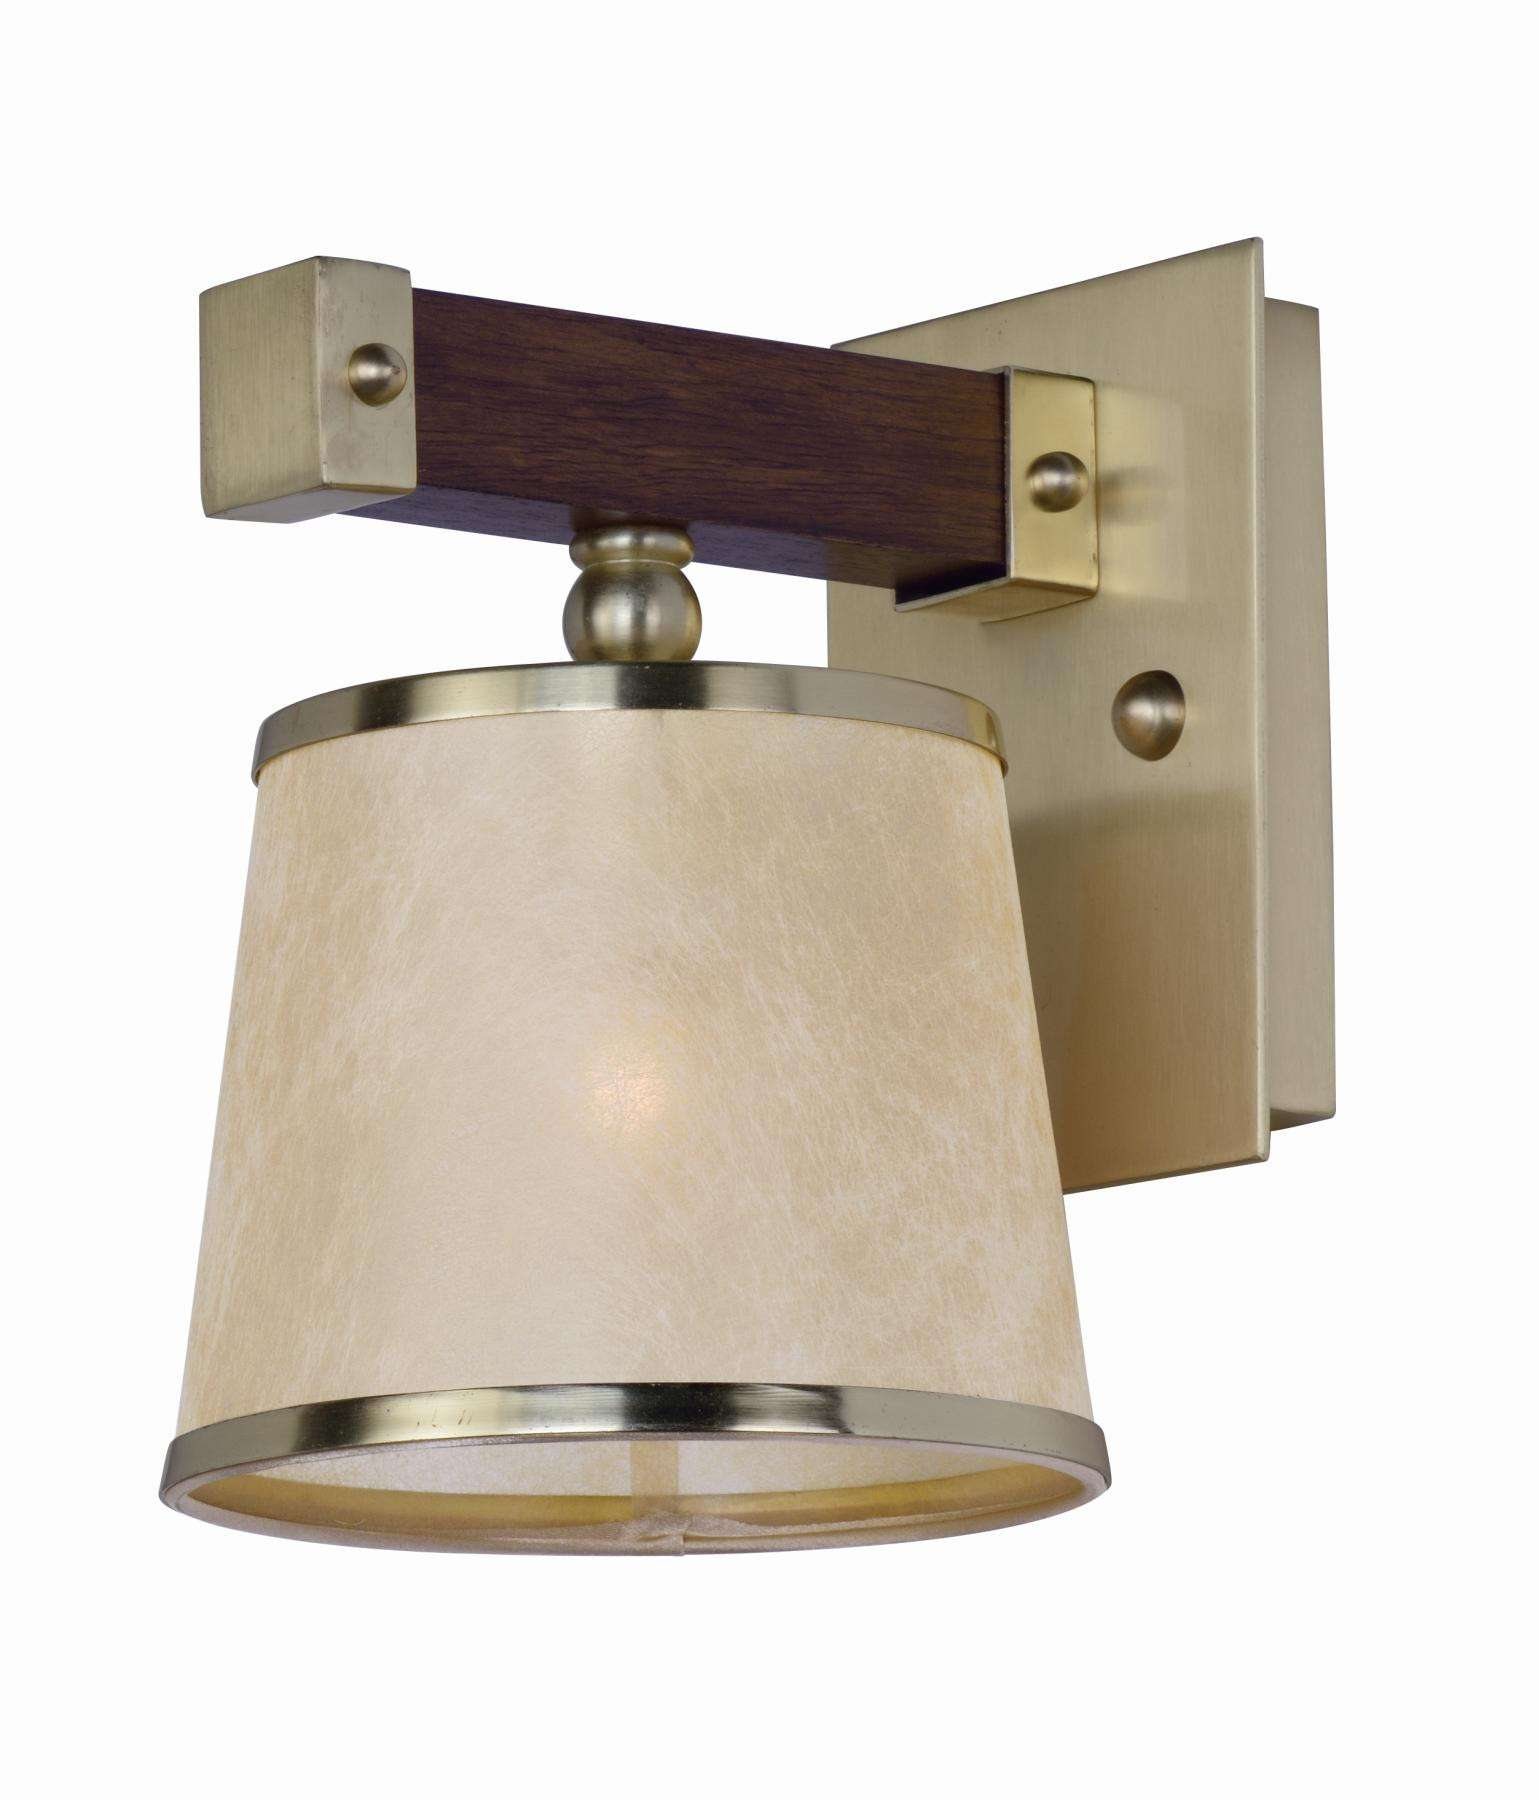 Maritime 1-Light Wall Sconce in Antique Pecan and Satin Brass